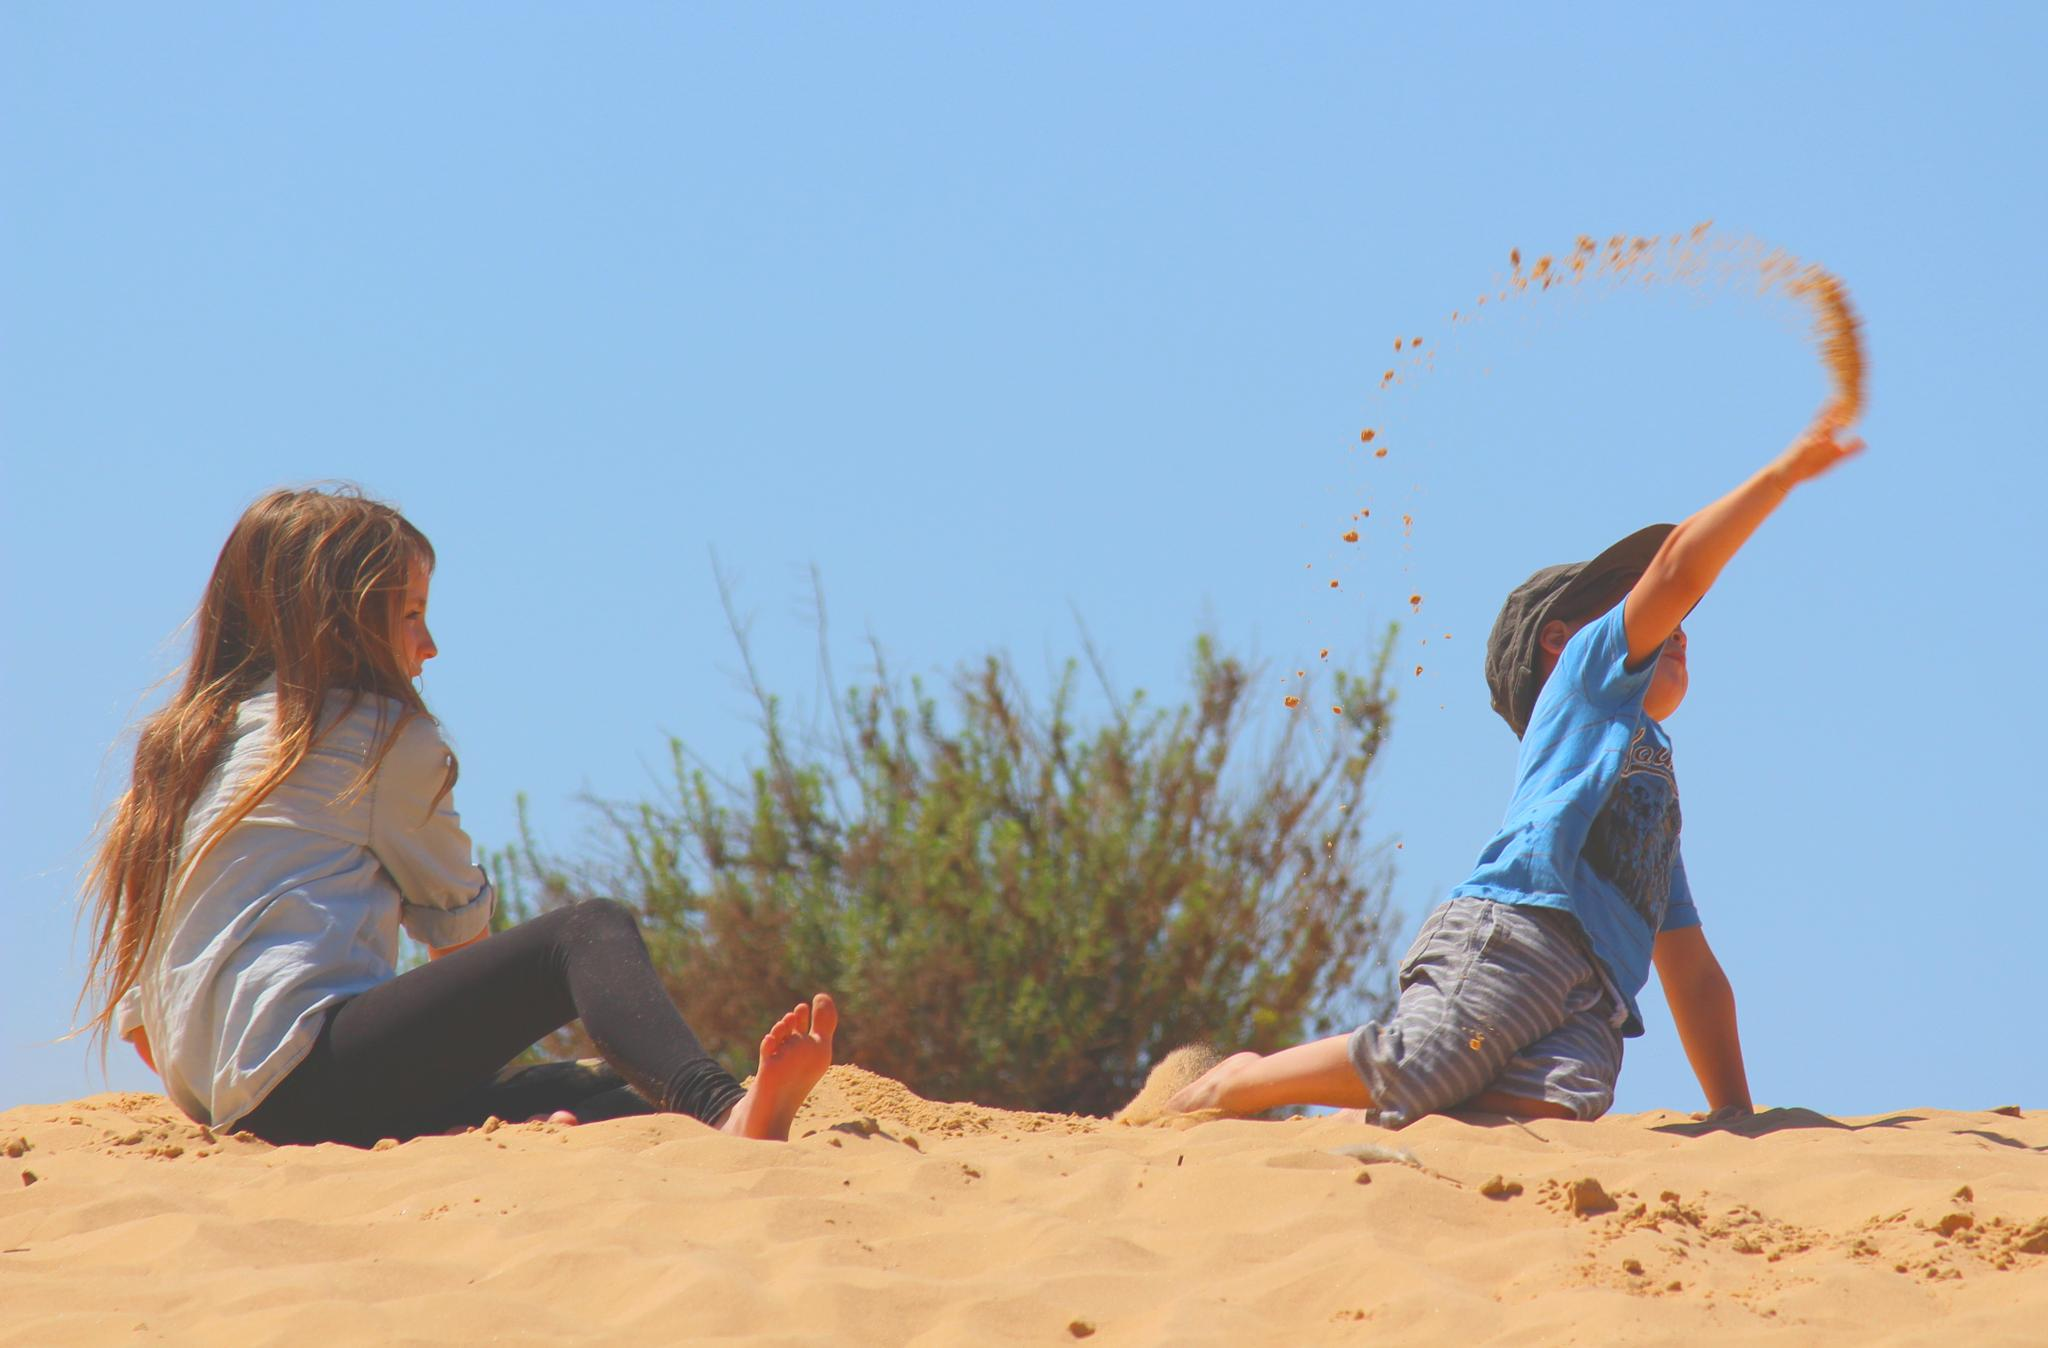 Playing in the sand by dany.kahanovitch